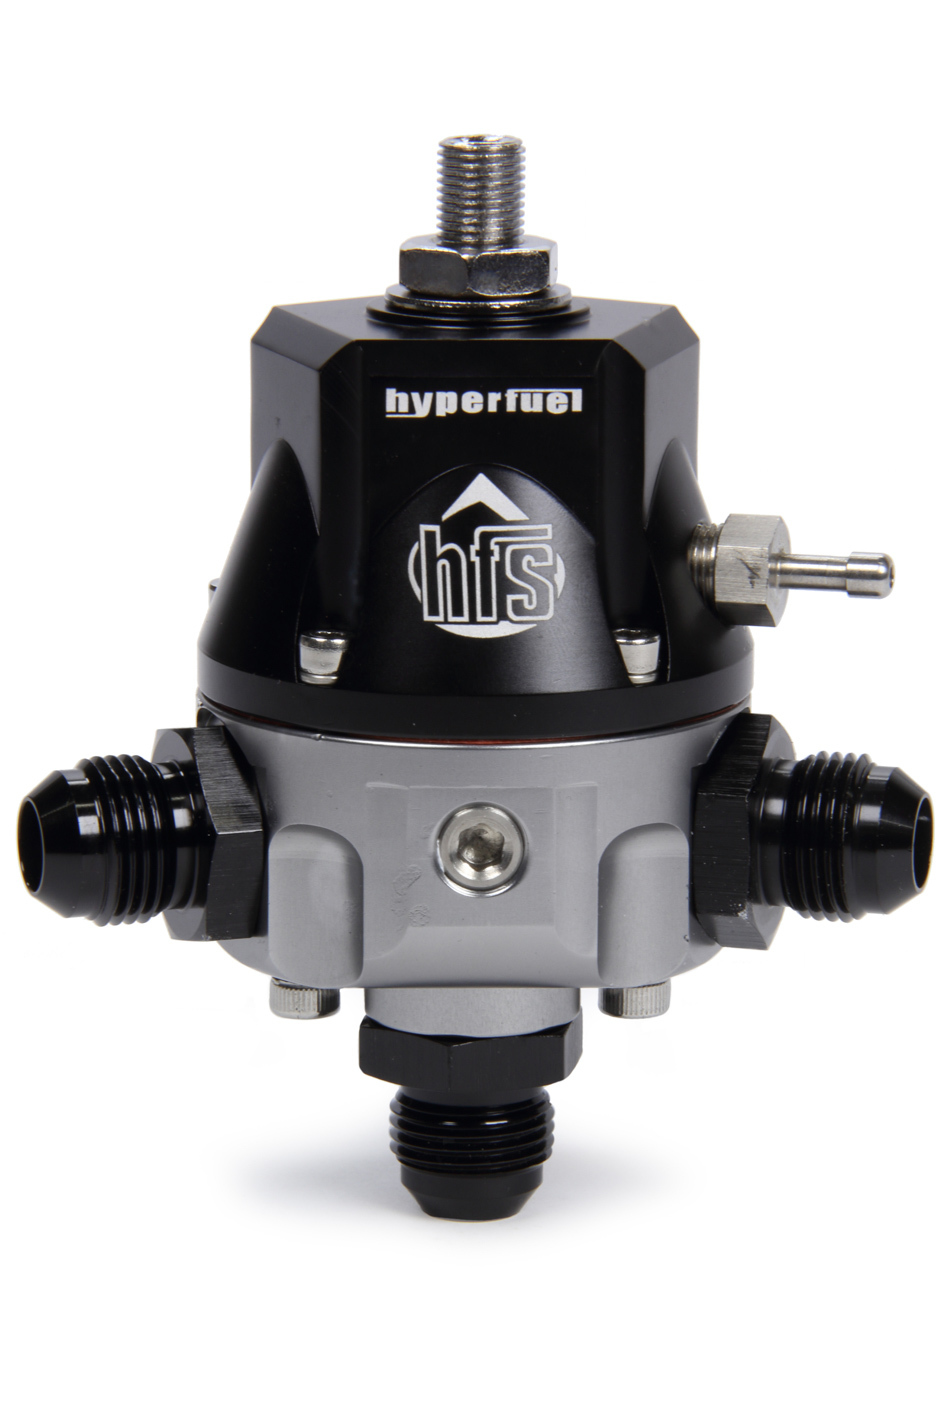 FST Carburetor 44011 Fuel Pressure Regulator, 3 to 15 psi, In-Line, 8 AN Female O-Ring Inlet, 8 AN Female O-Ring Outlet, 8 AN Female O-Ring Return, Aluminum, Black / Clear Anodized, E85 / Gas, Each